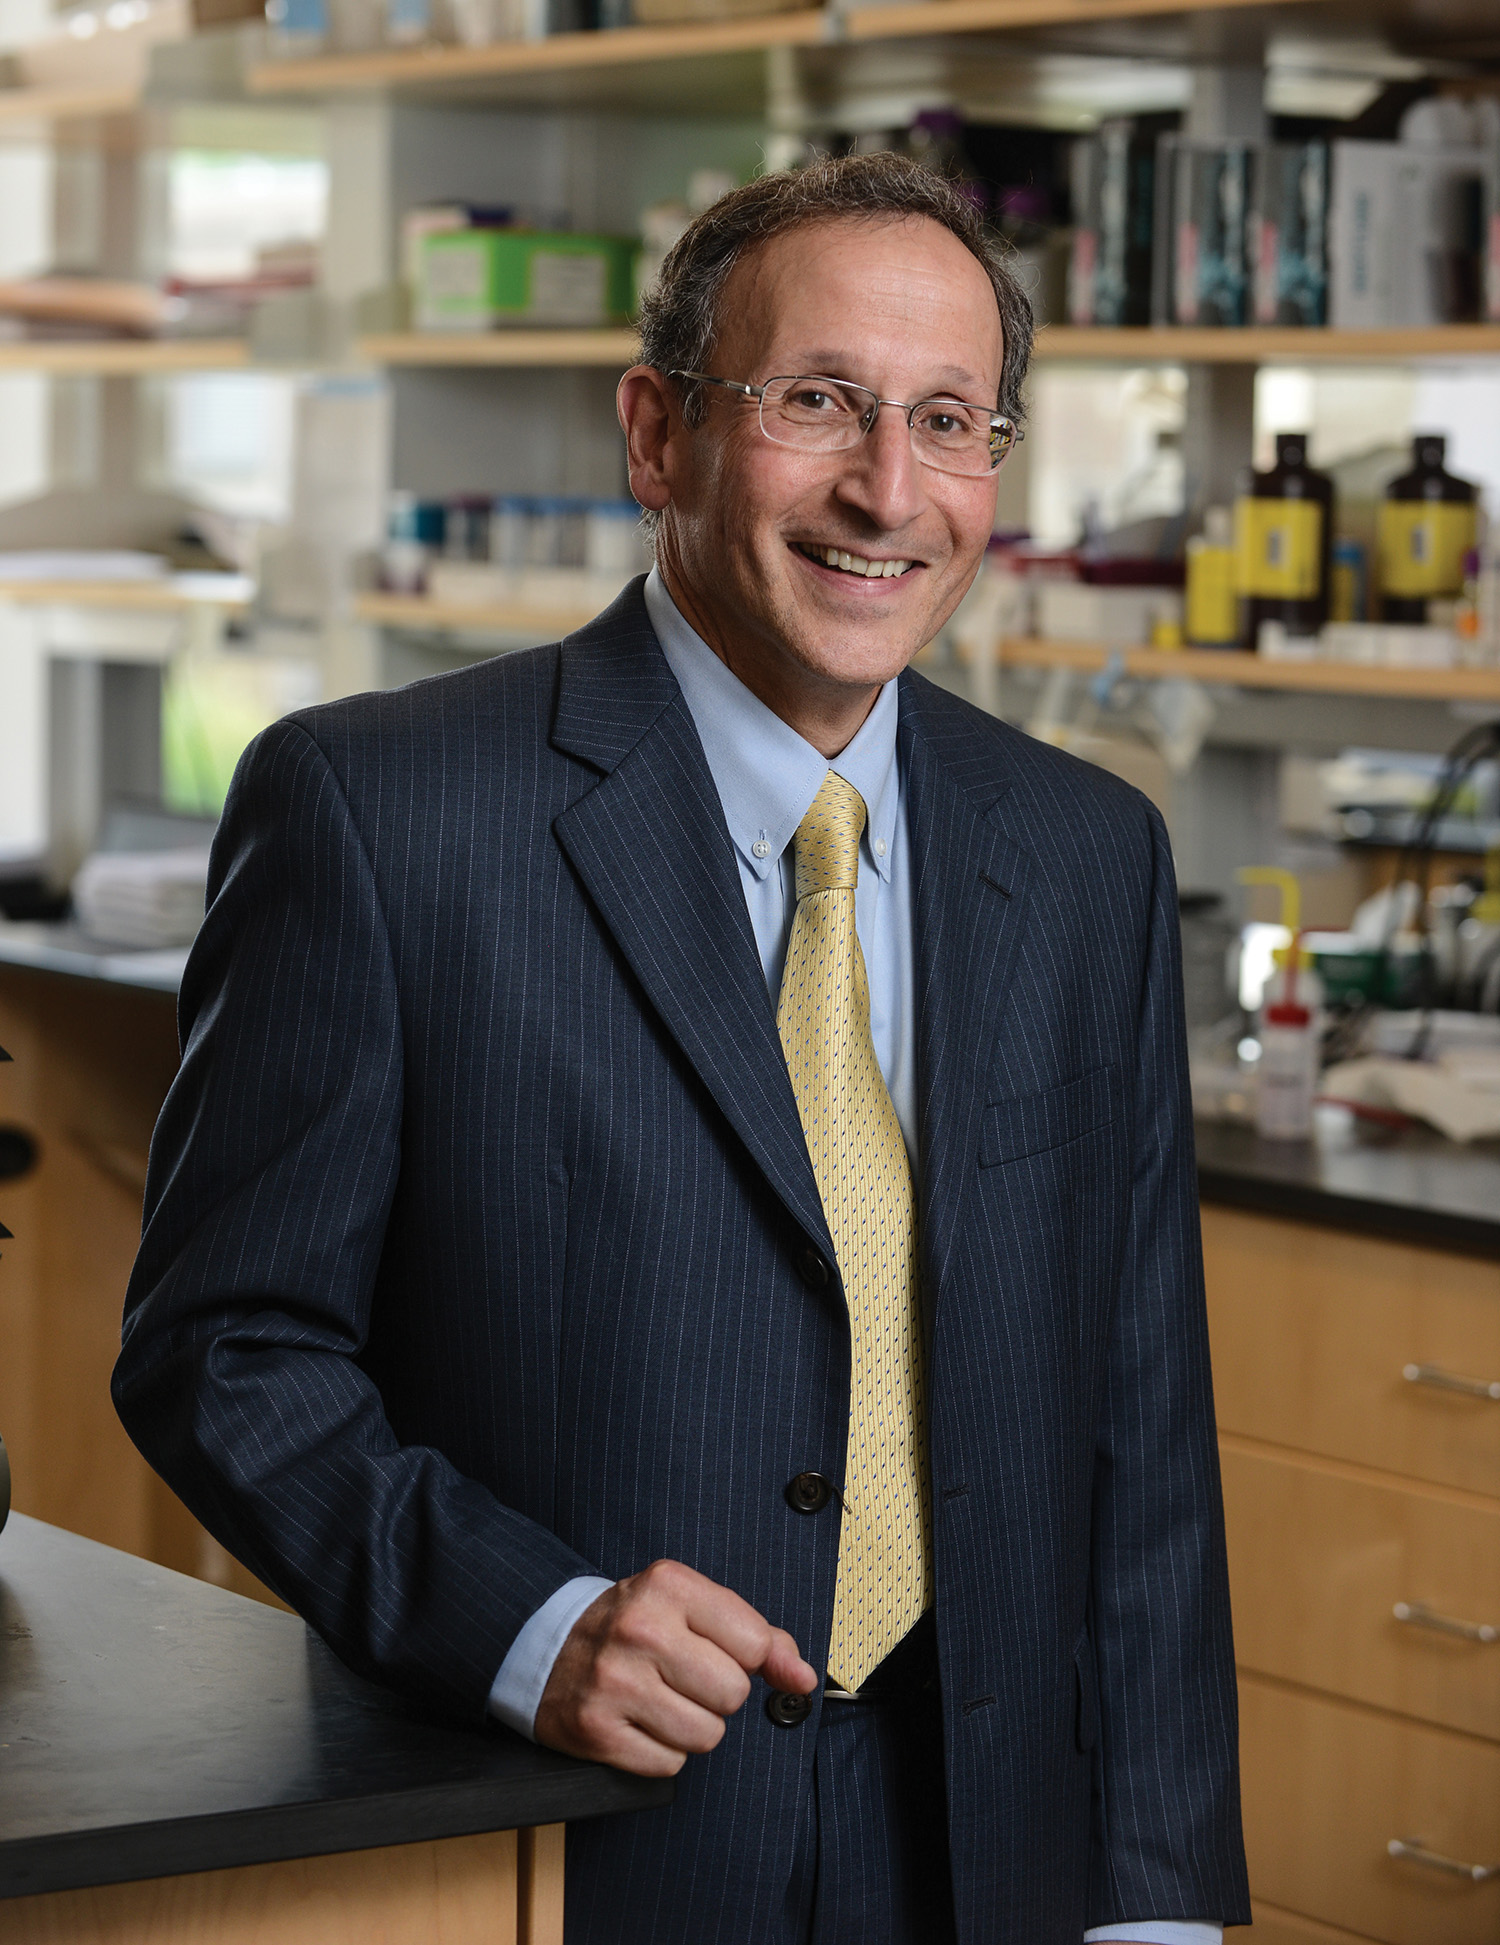 Paul DiCorleto, PhD, vice president for research and sponsored programs